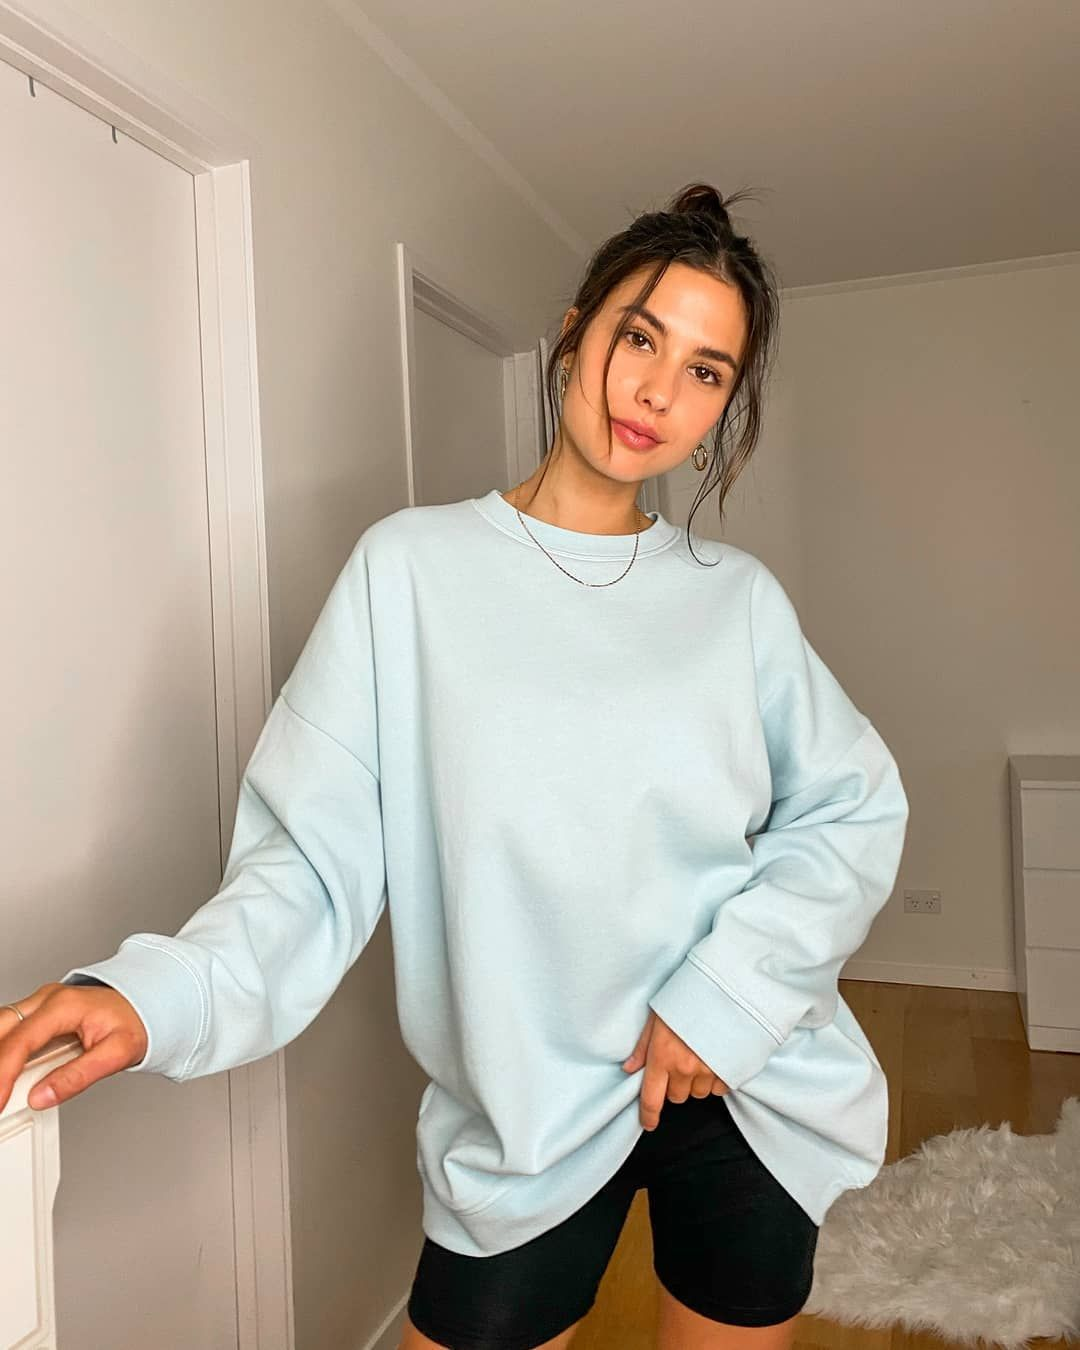 Glassons On Instagram Cosy In The Oversized Crewneck Sweatshirt Colours Vary Between Country And Cotton Bike Short Shop Yours Online Now Glassons [ 1350 x 1080 Pixel ]